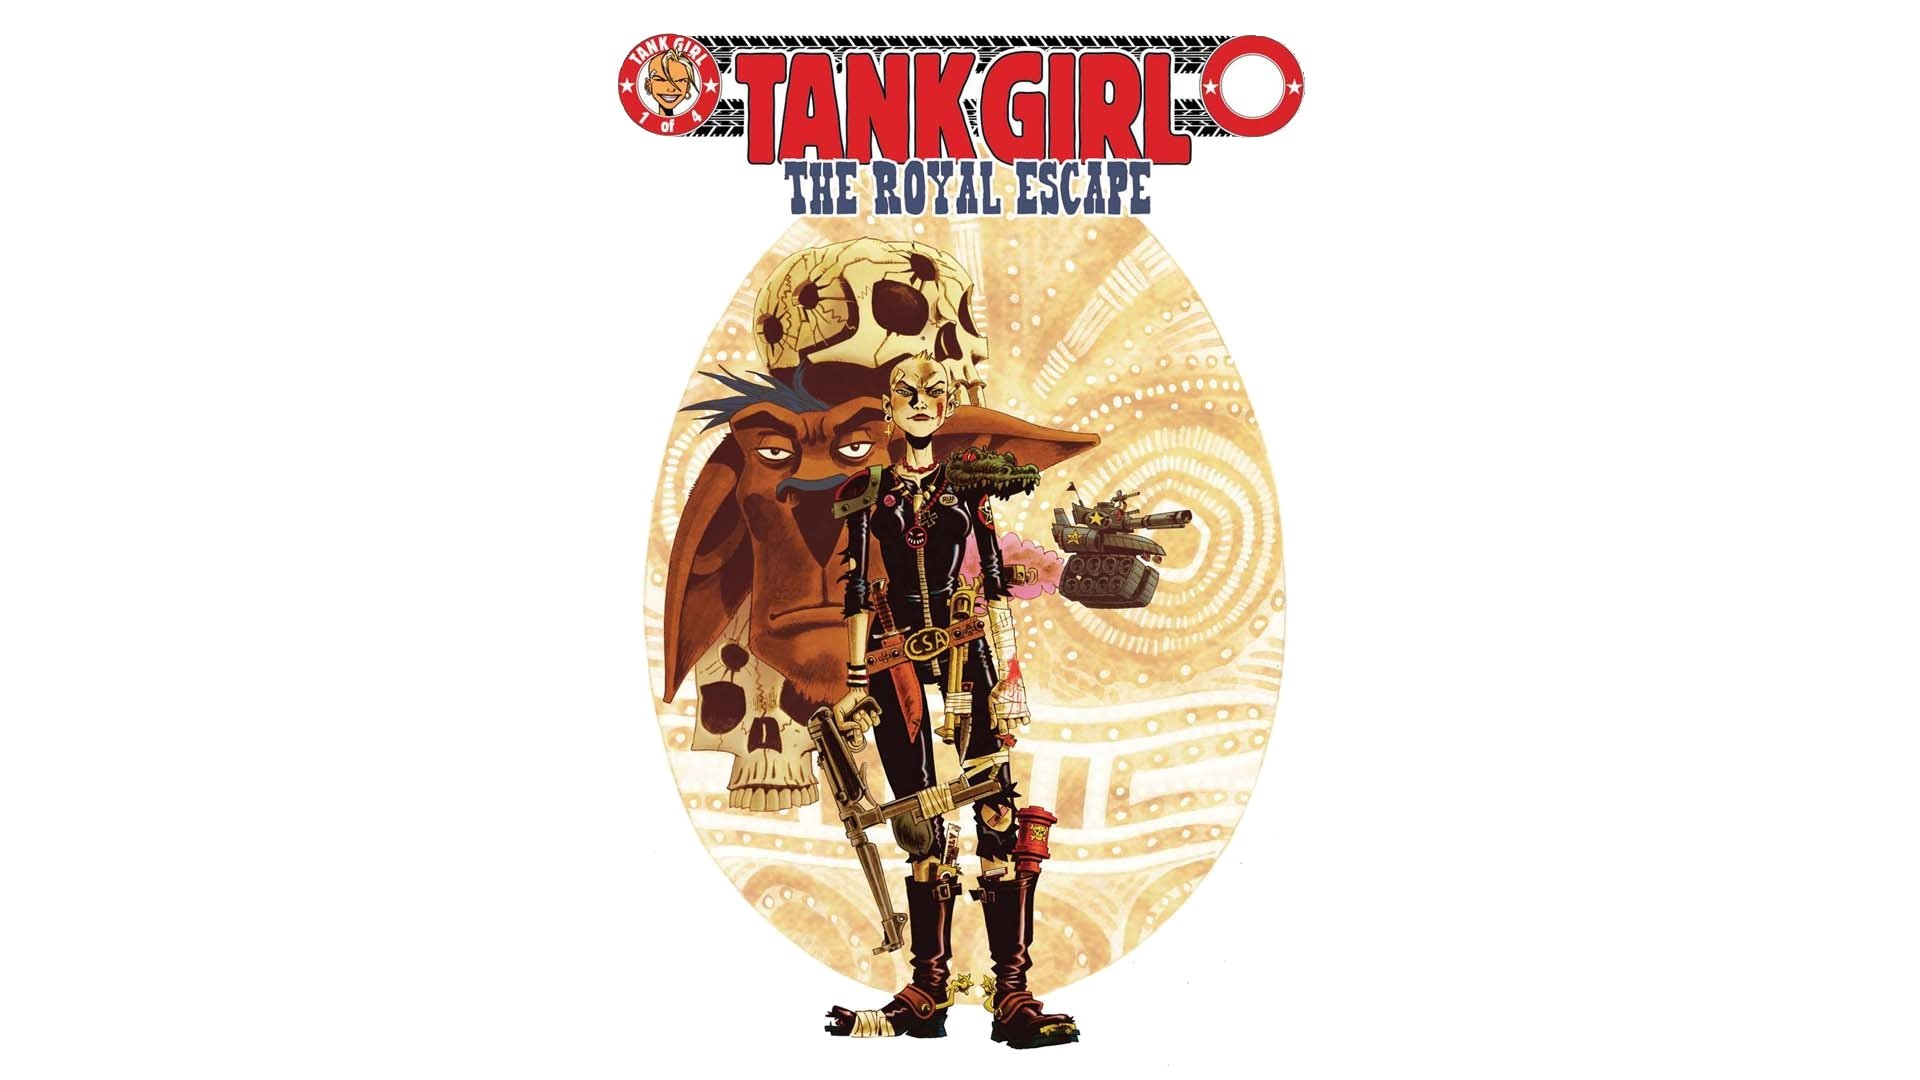 tank girl movie download